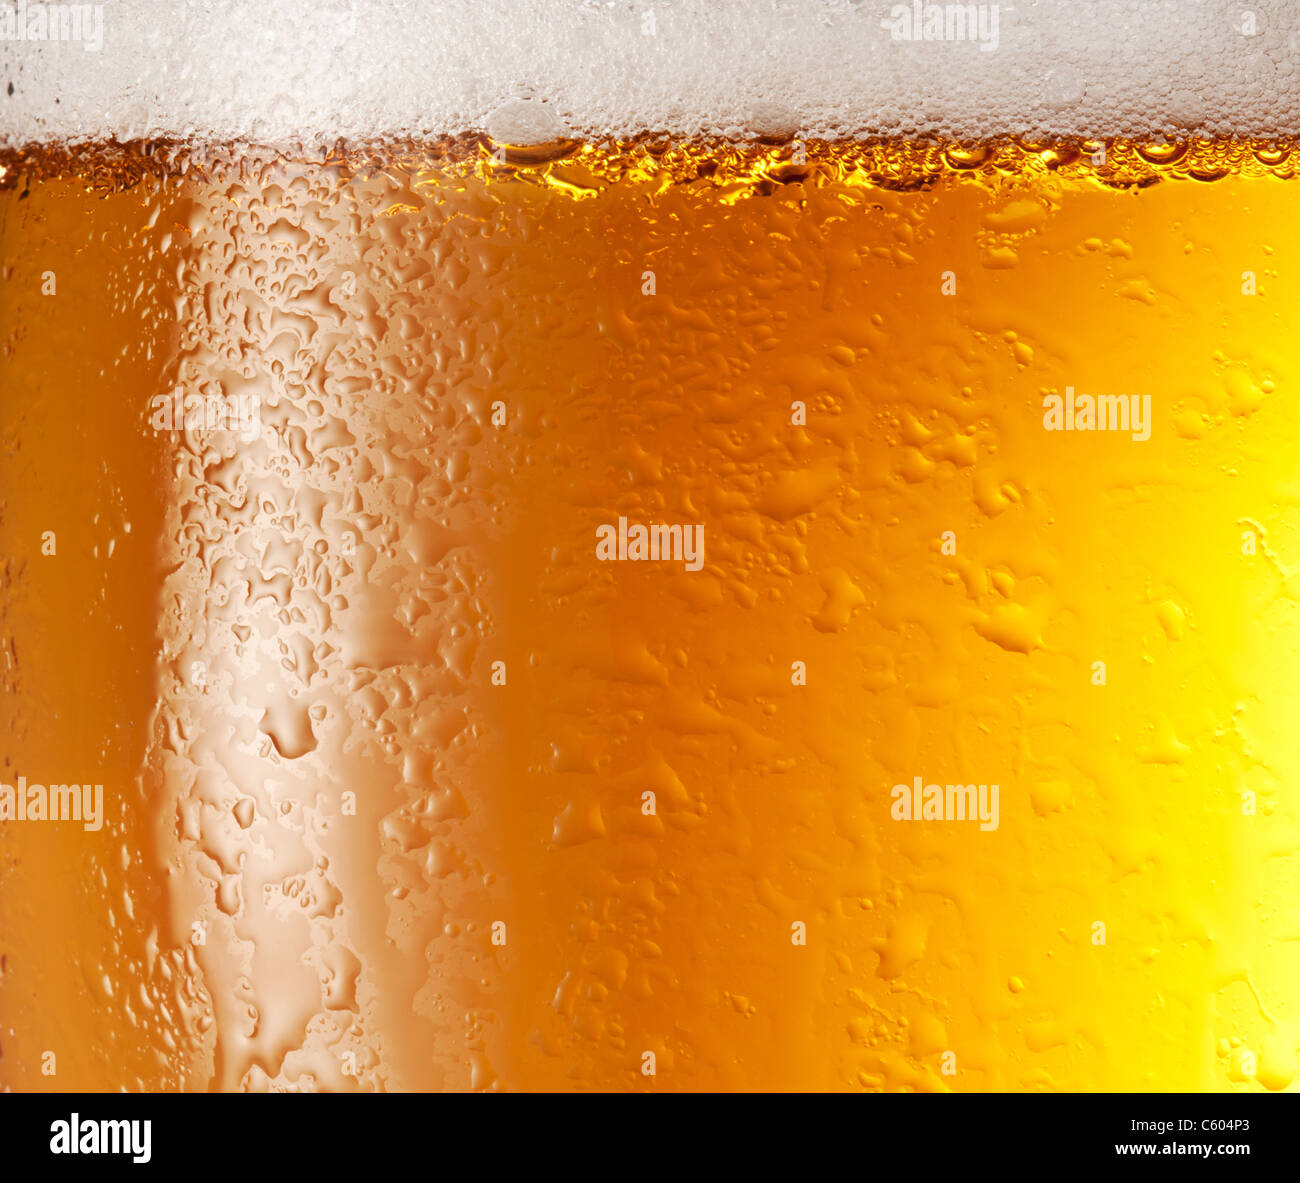 Drop and foam of beer as background. - Stock Image